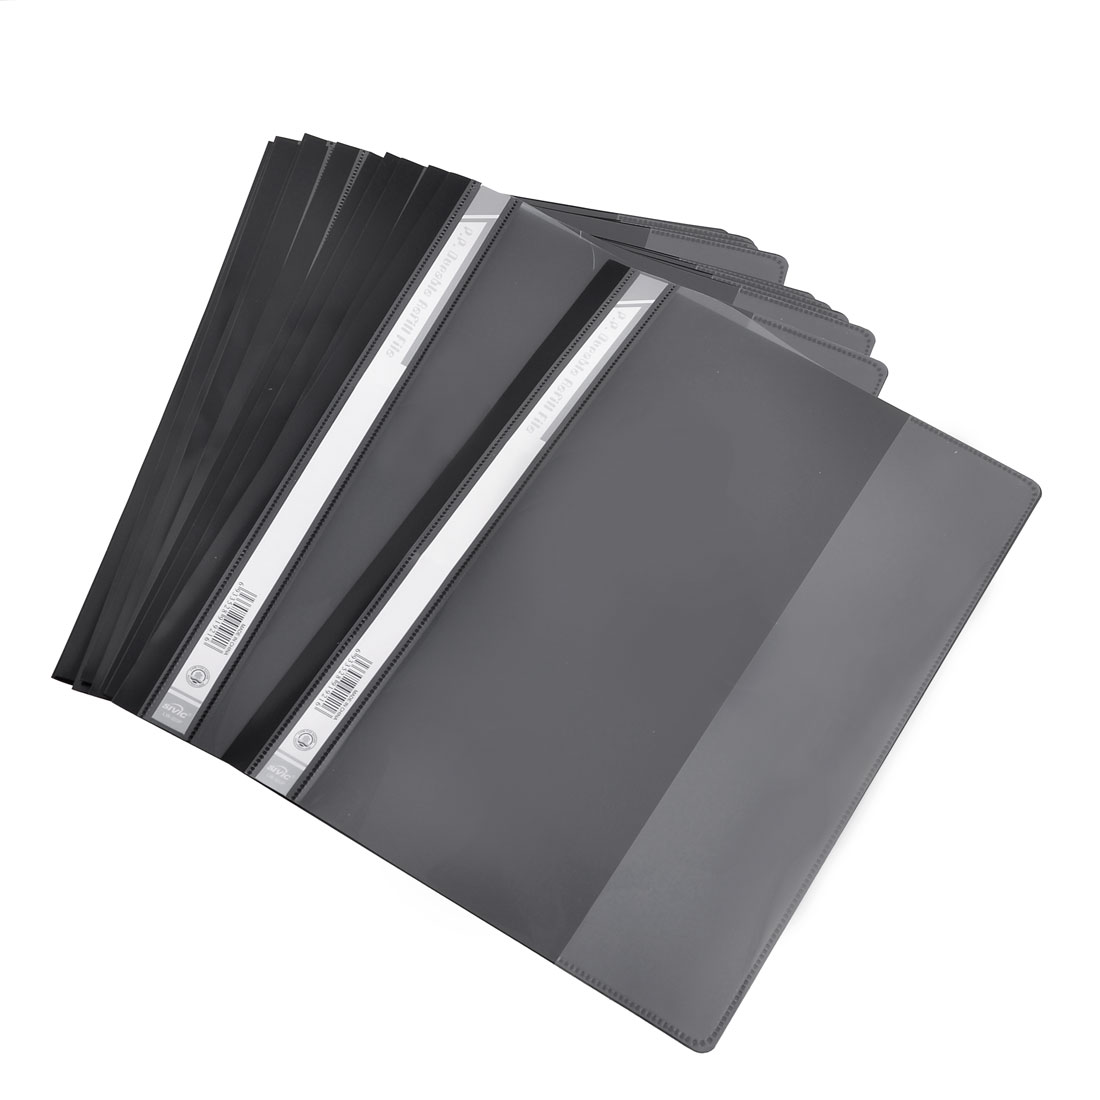 12 Pcs Size A4 Paper File Document Case Conference Folder Black Clear